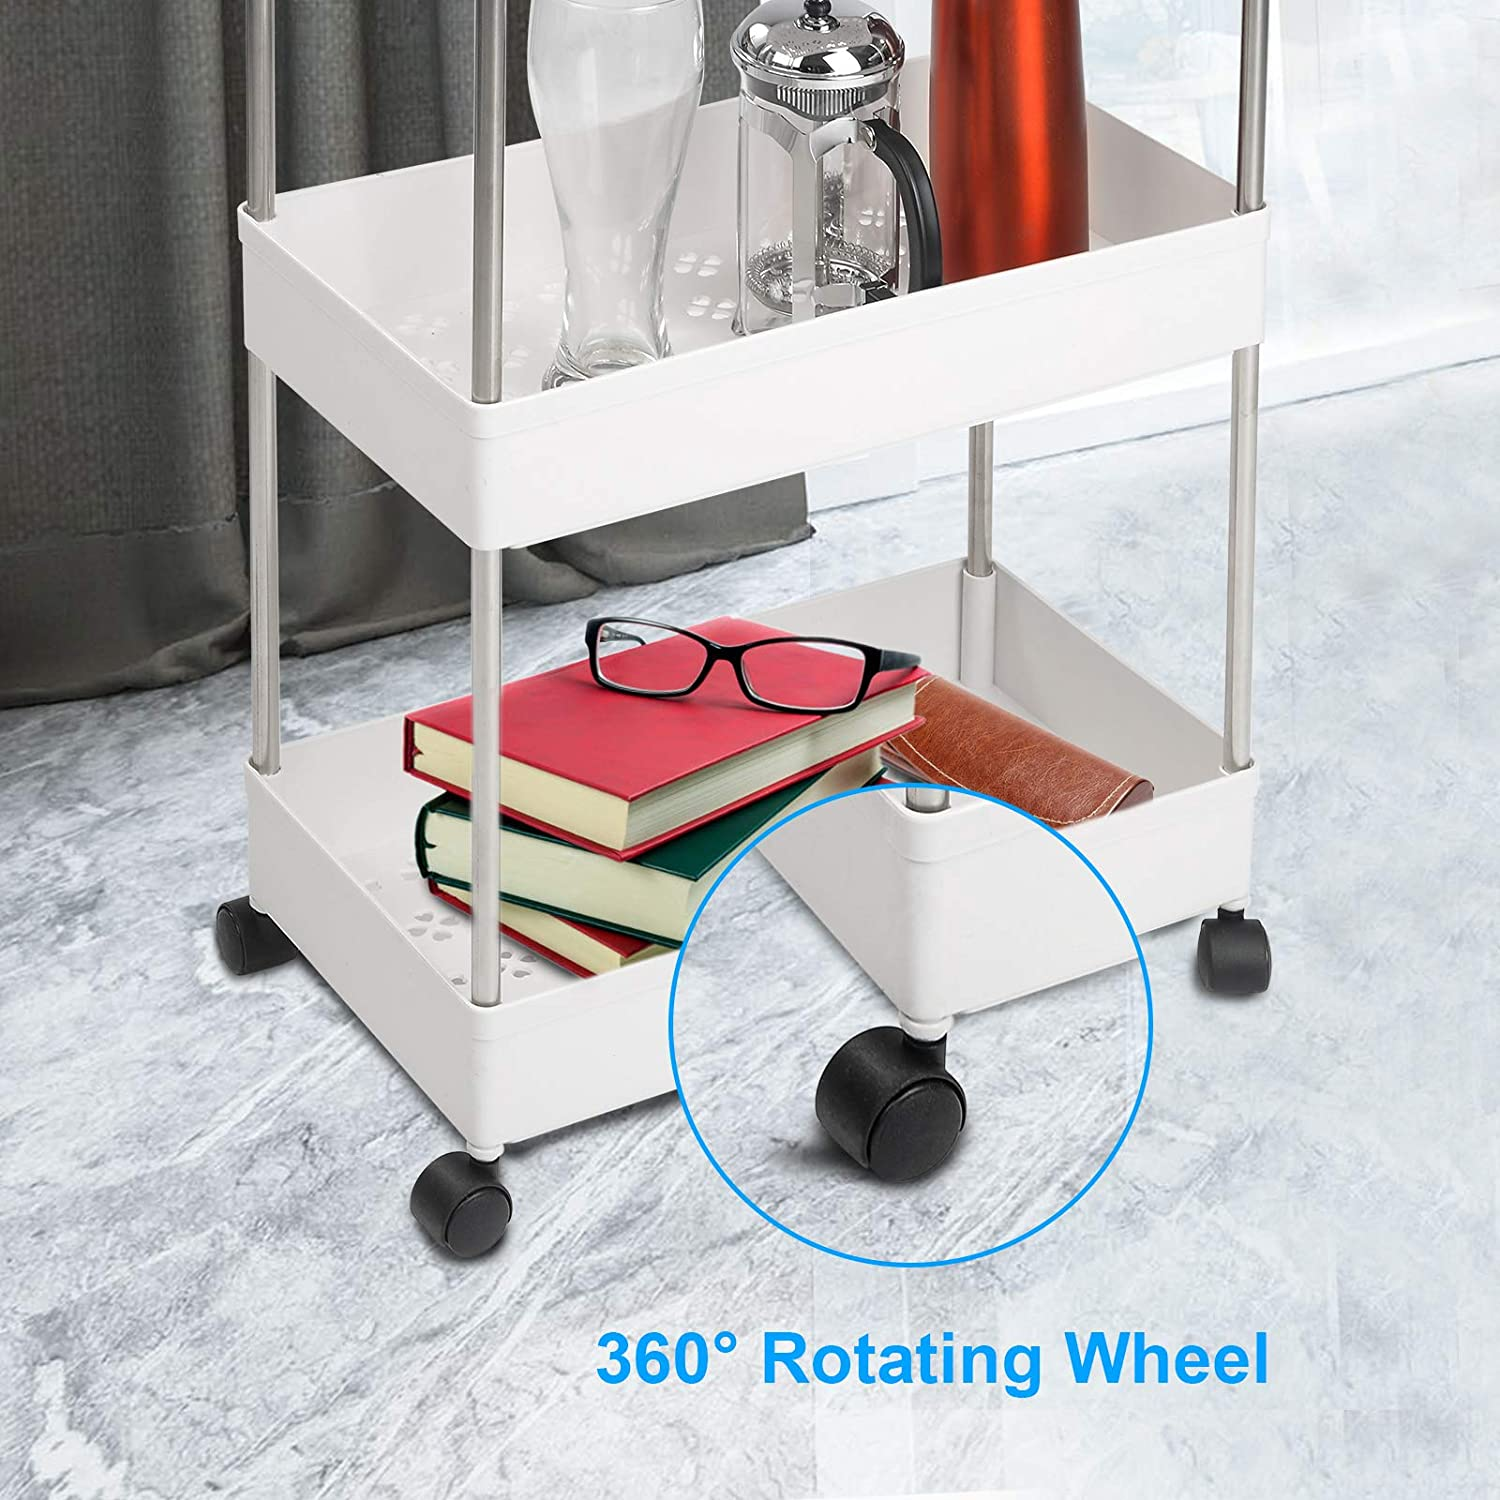 CKATE Storage Trolley Cart White Mobile Storage Rack for Kitchen 4-Tire Slide Out Rolling Storage Trolley with Wheels Office Study Living Room Bathroom Bedroom